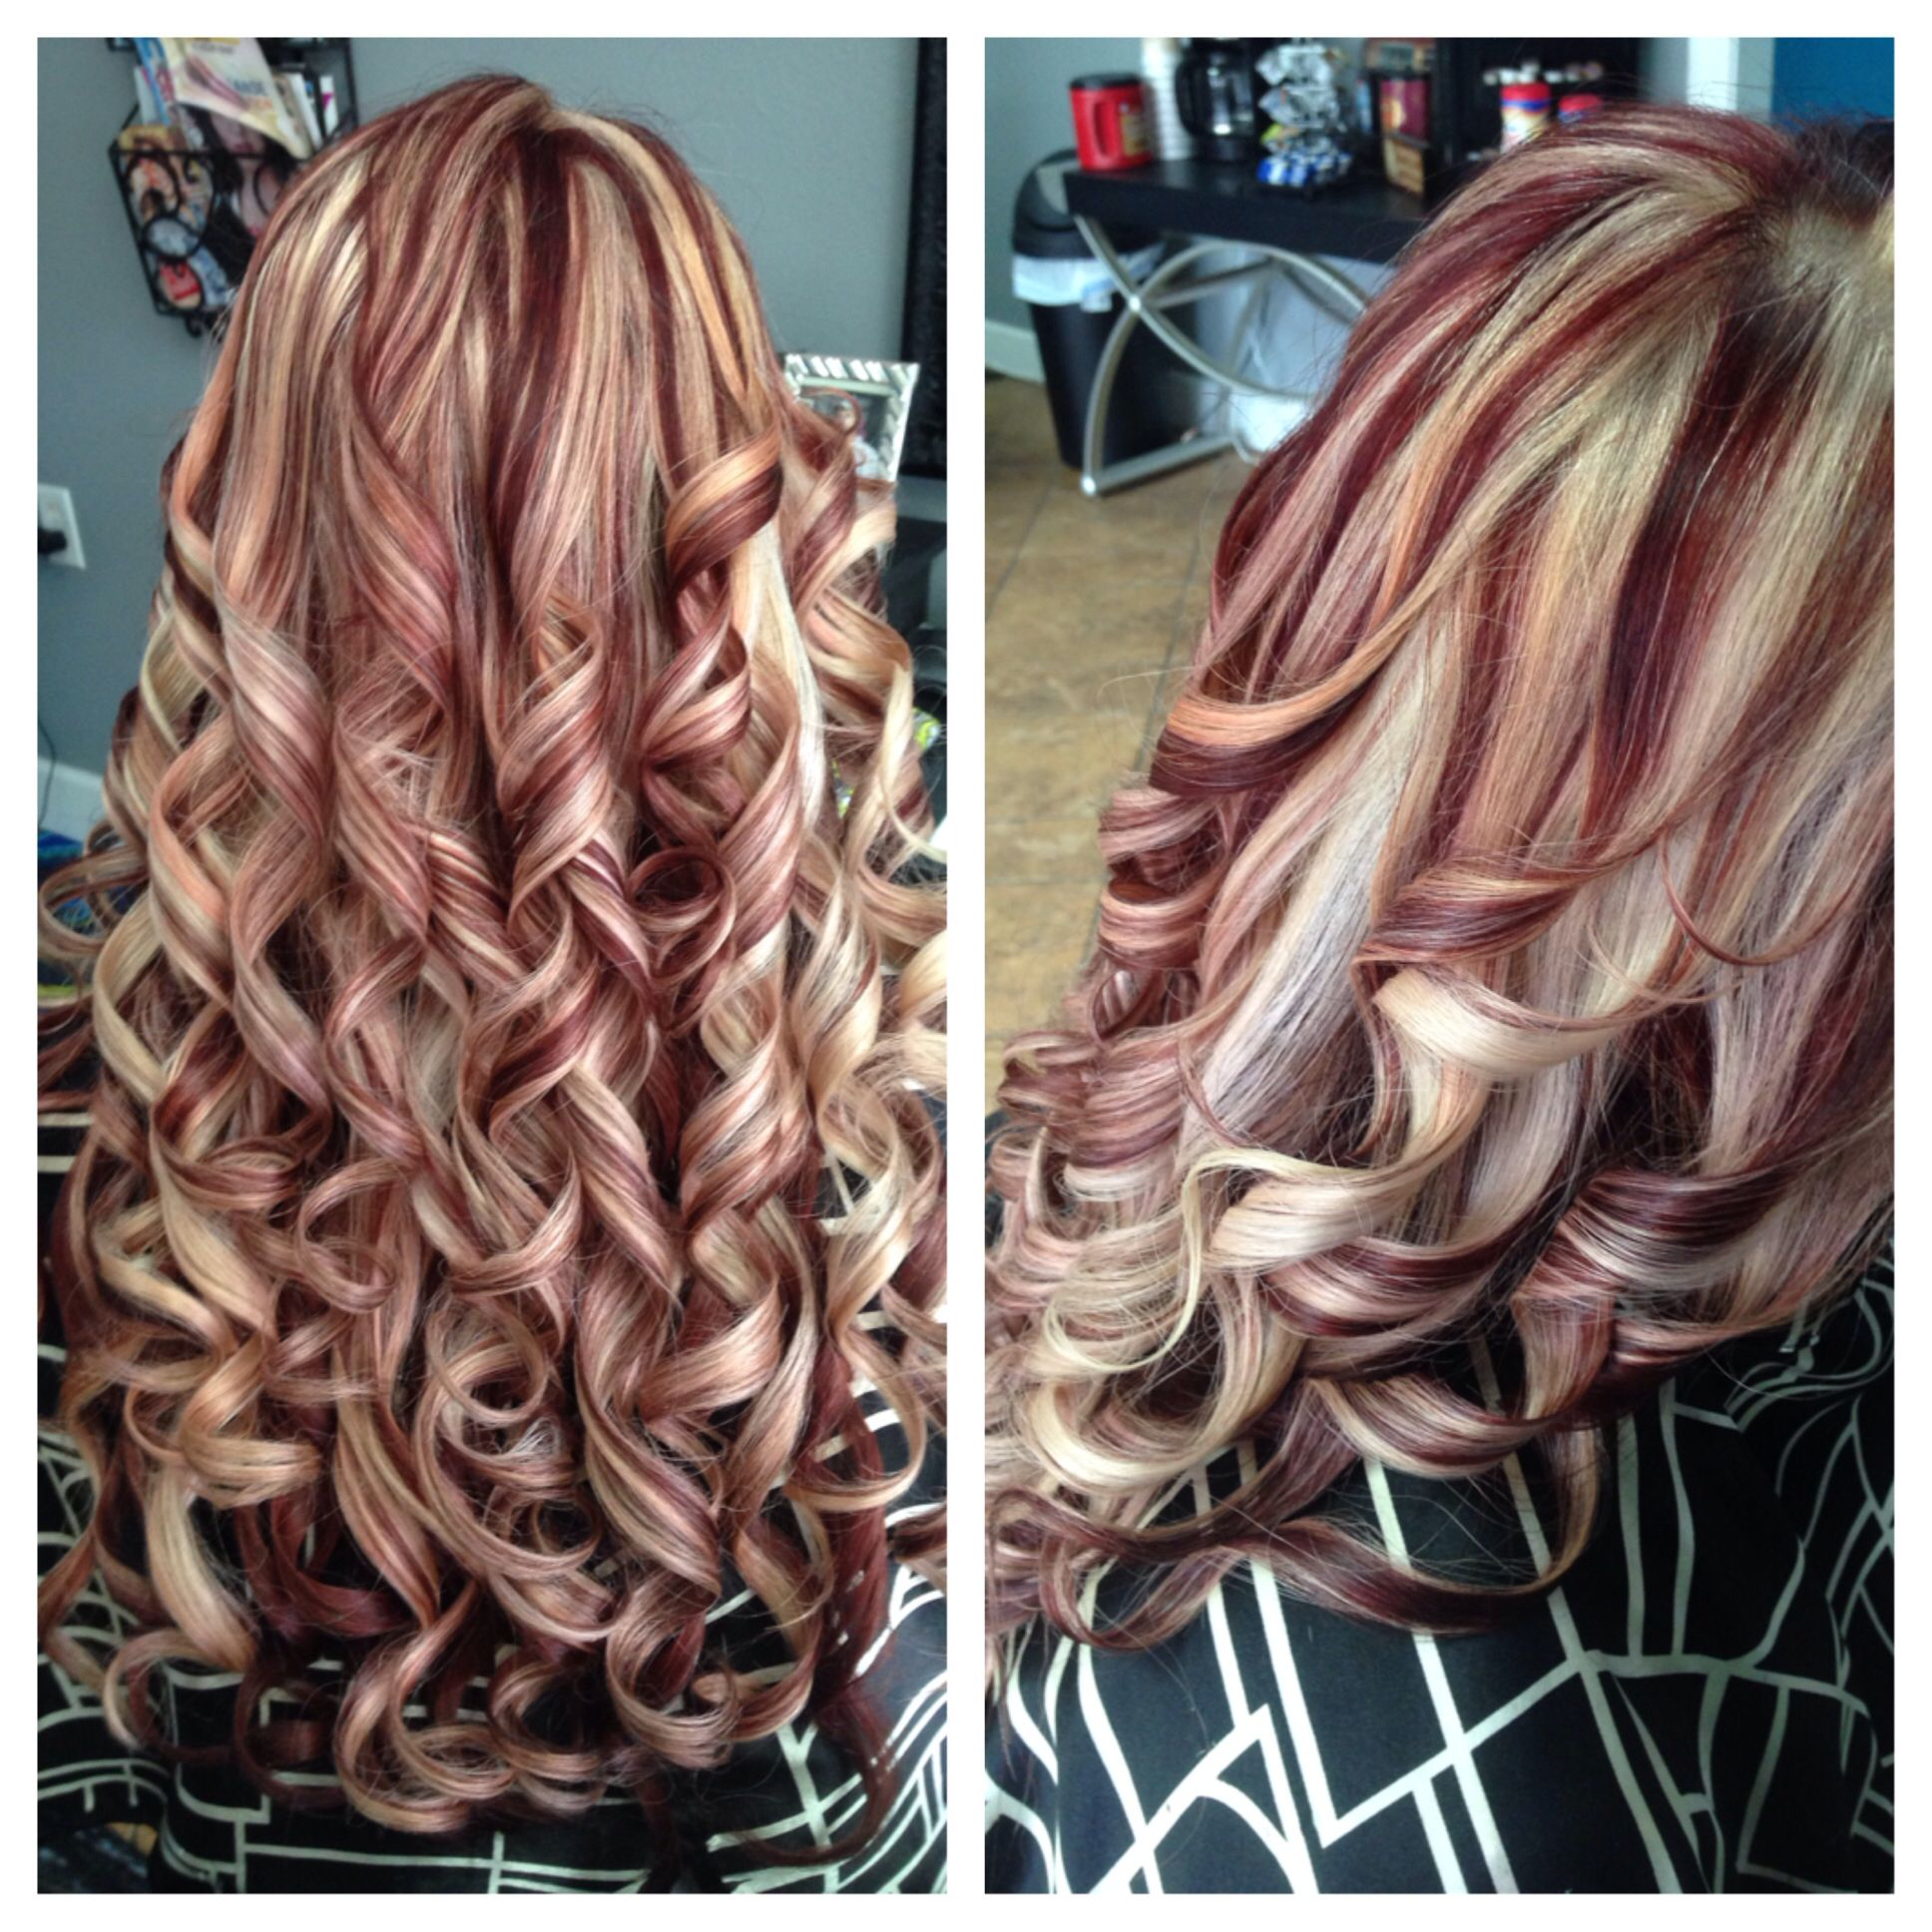 Blonde Highlights Red Lowlights Hair Colors Naglar Skonhet